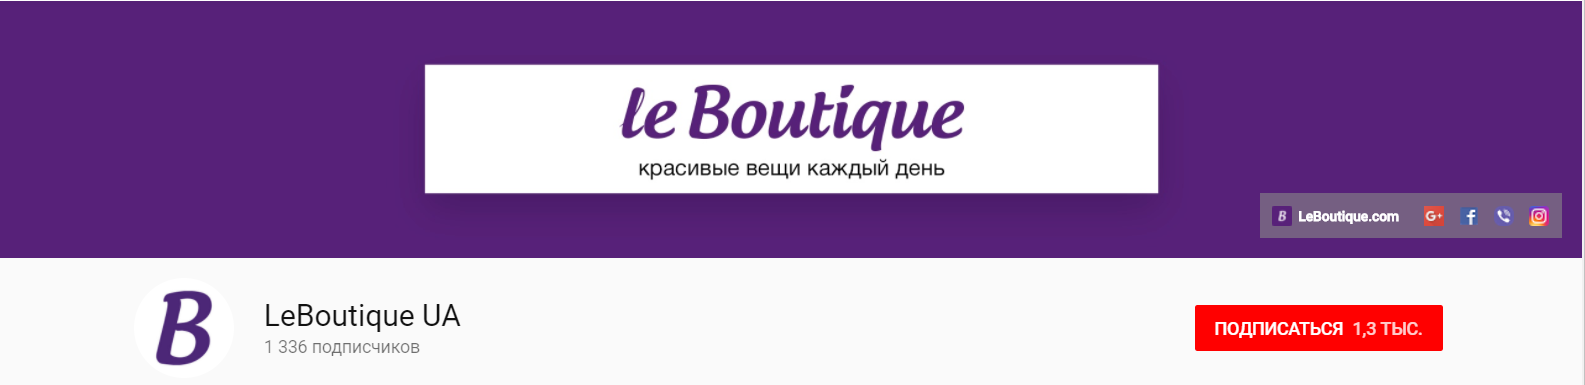 leBoutique - идеи для фона YouTube-канала